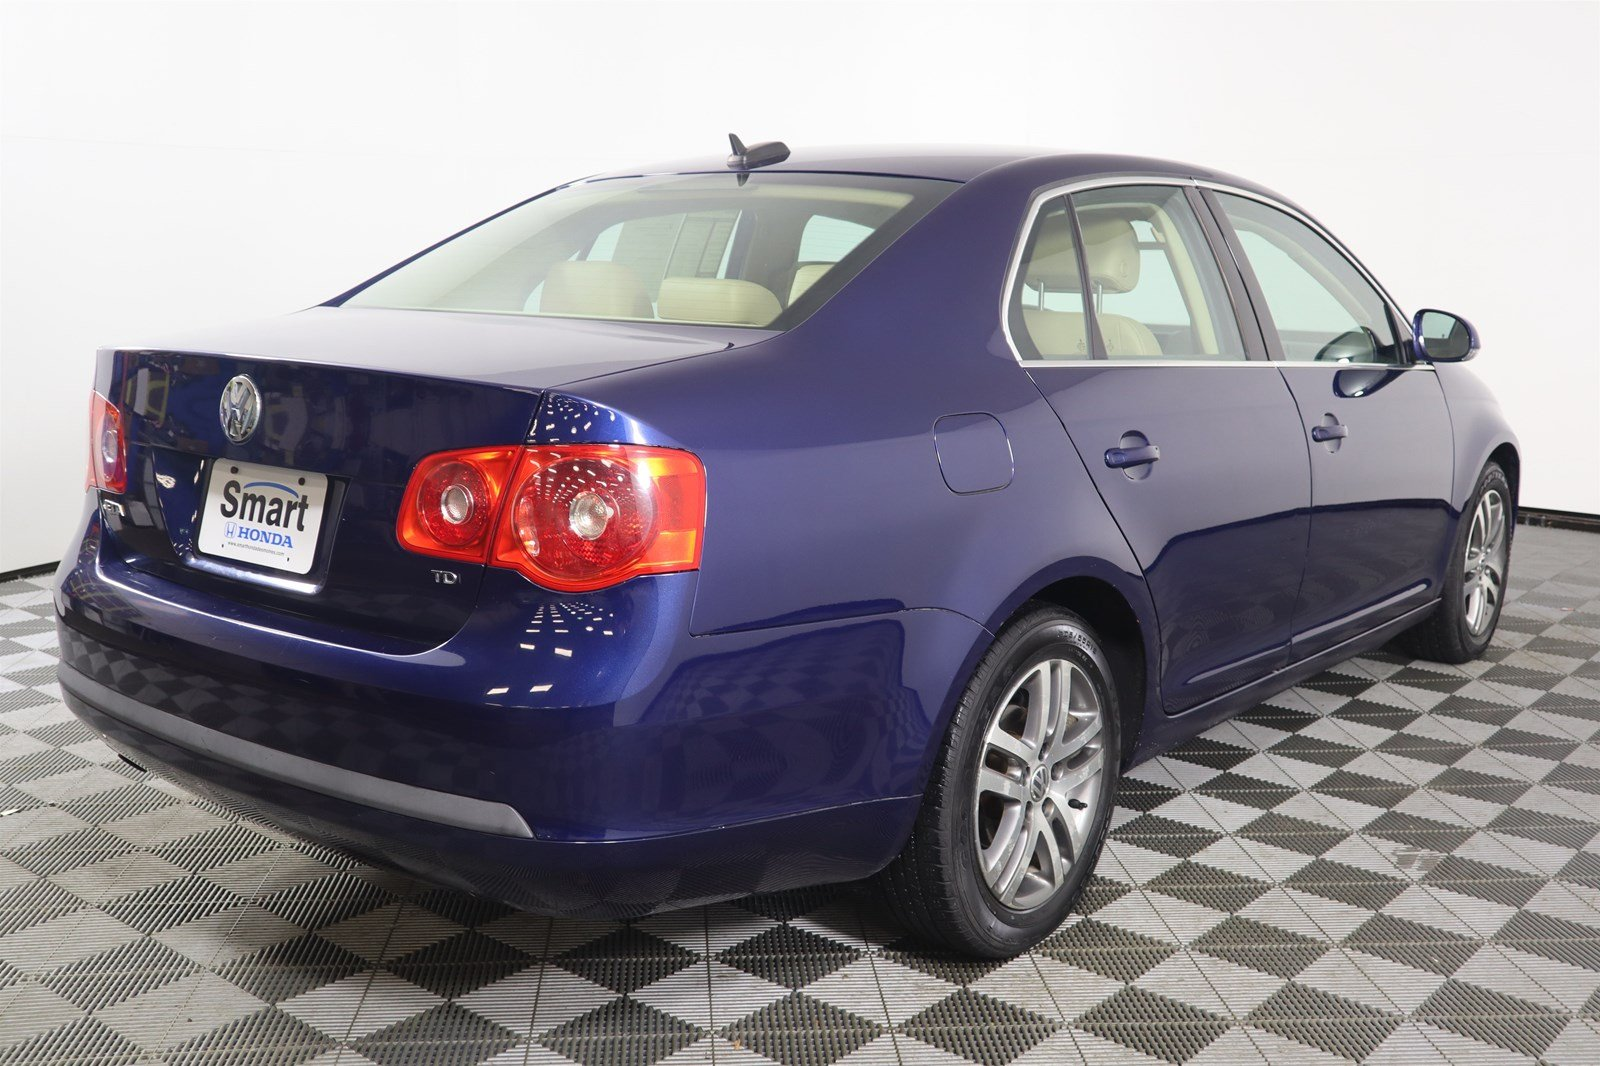 Pre-Owned 2006 Volkswagen Jetta Sedan 1.9L TDI